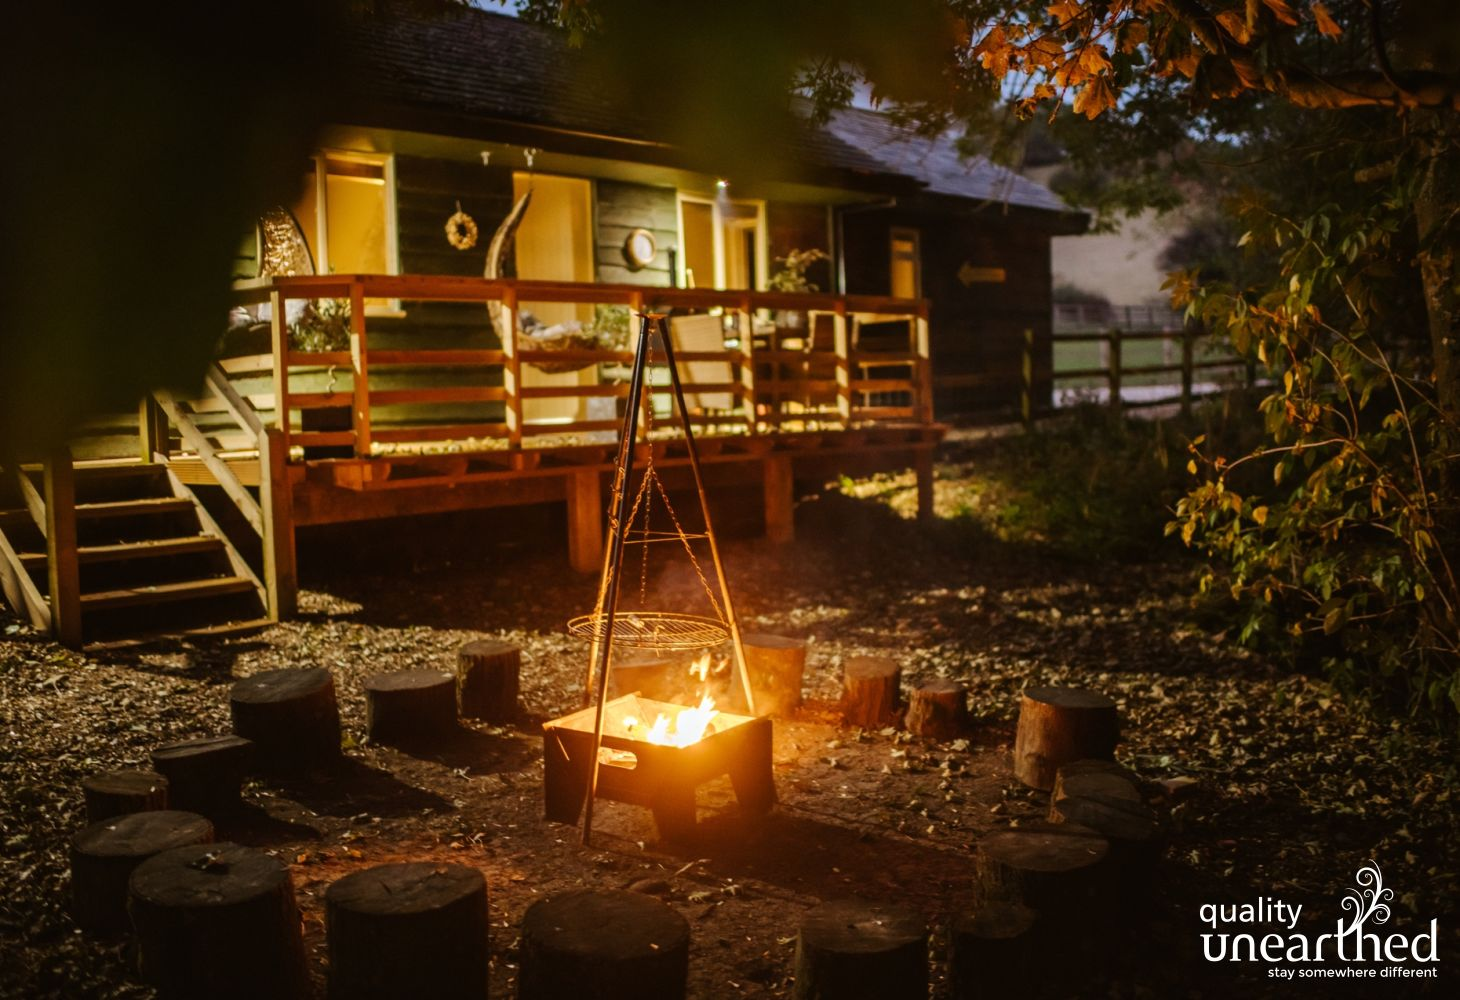 A fire pit goes hand in hand with many a family glamping holiday